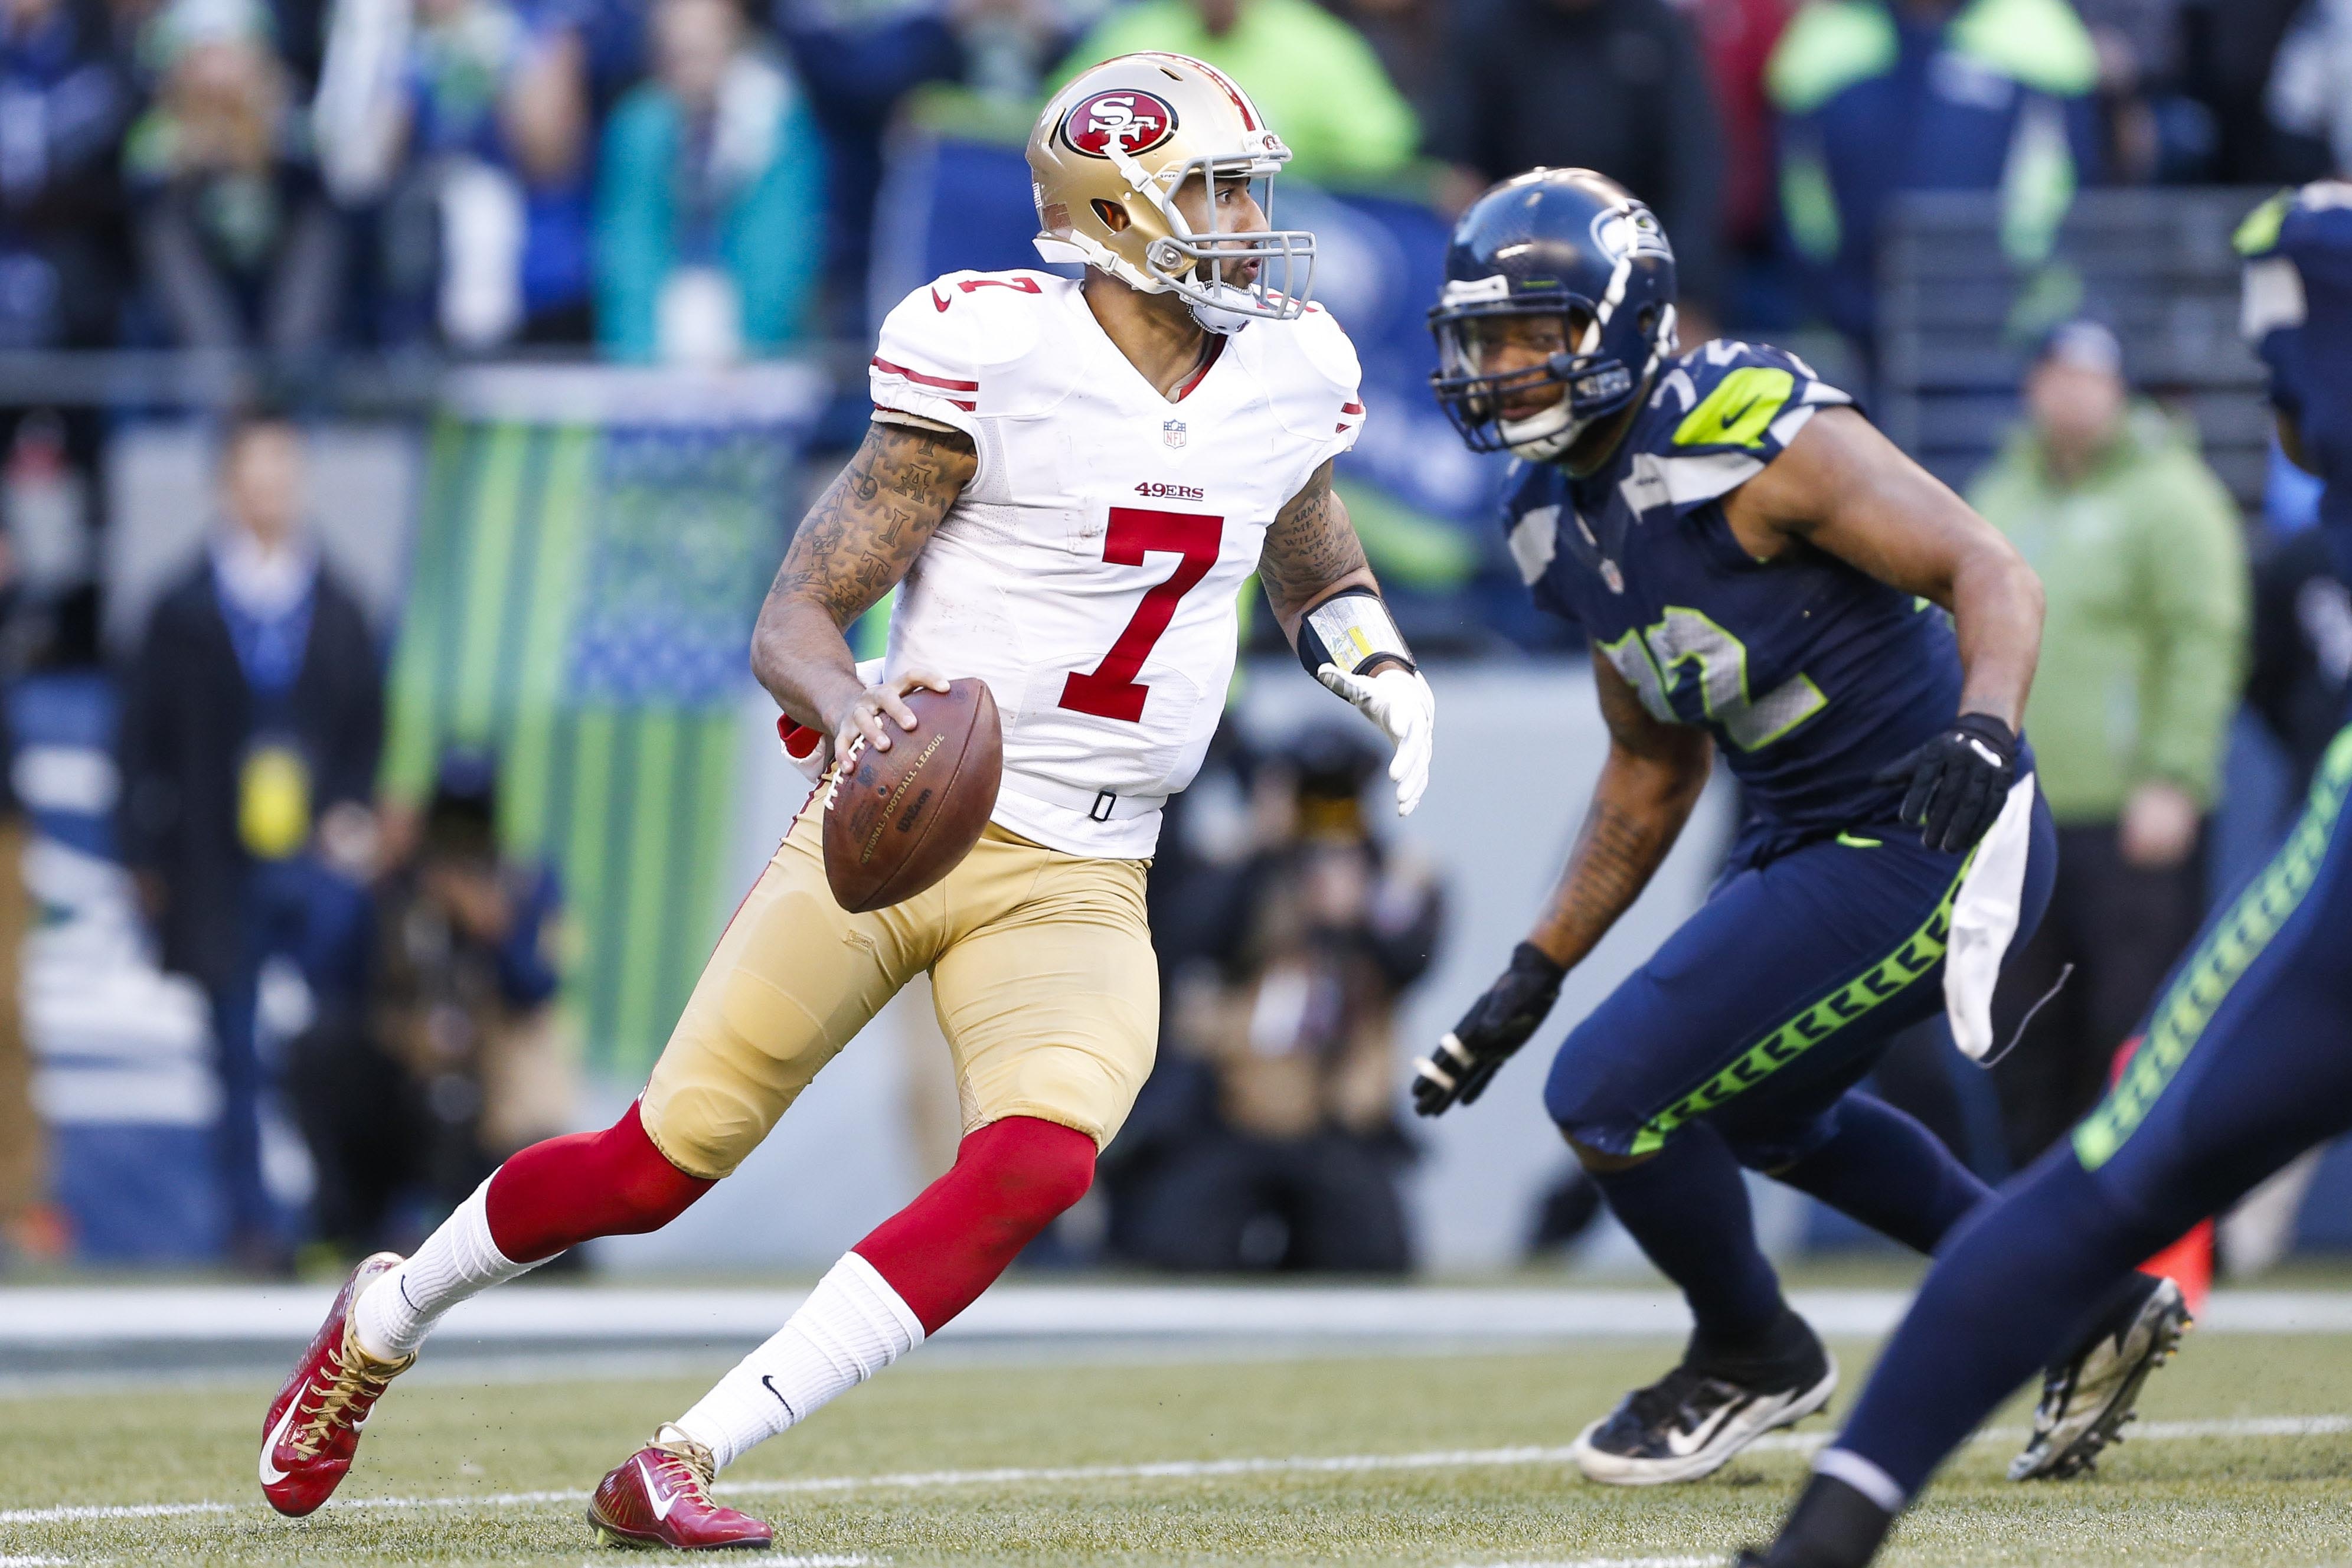 8272709-nfl-san-francisco-49ers-at-seattle-seahawks